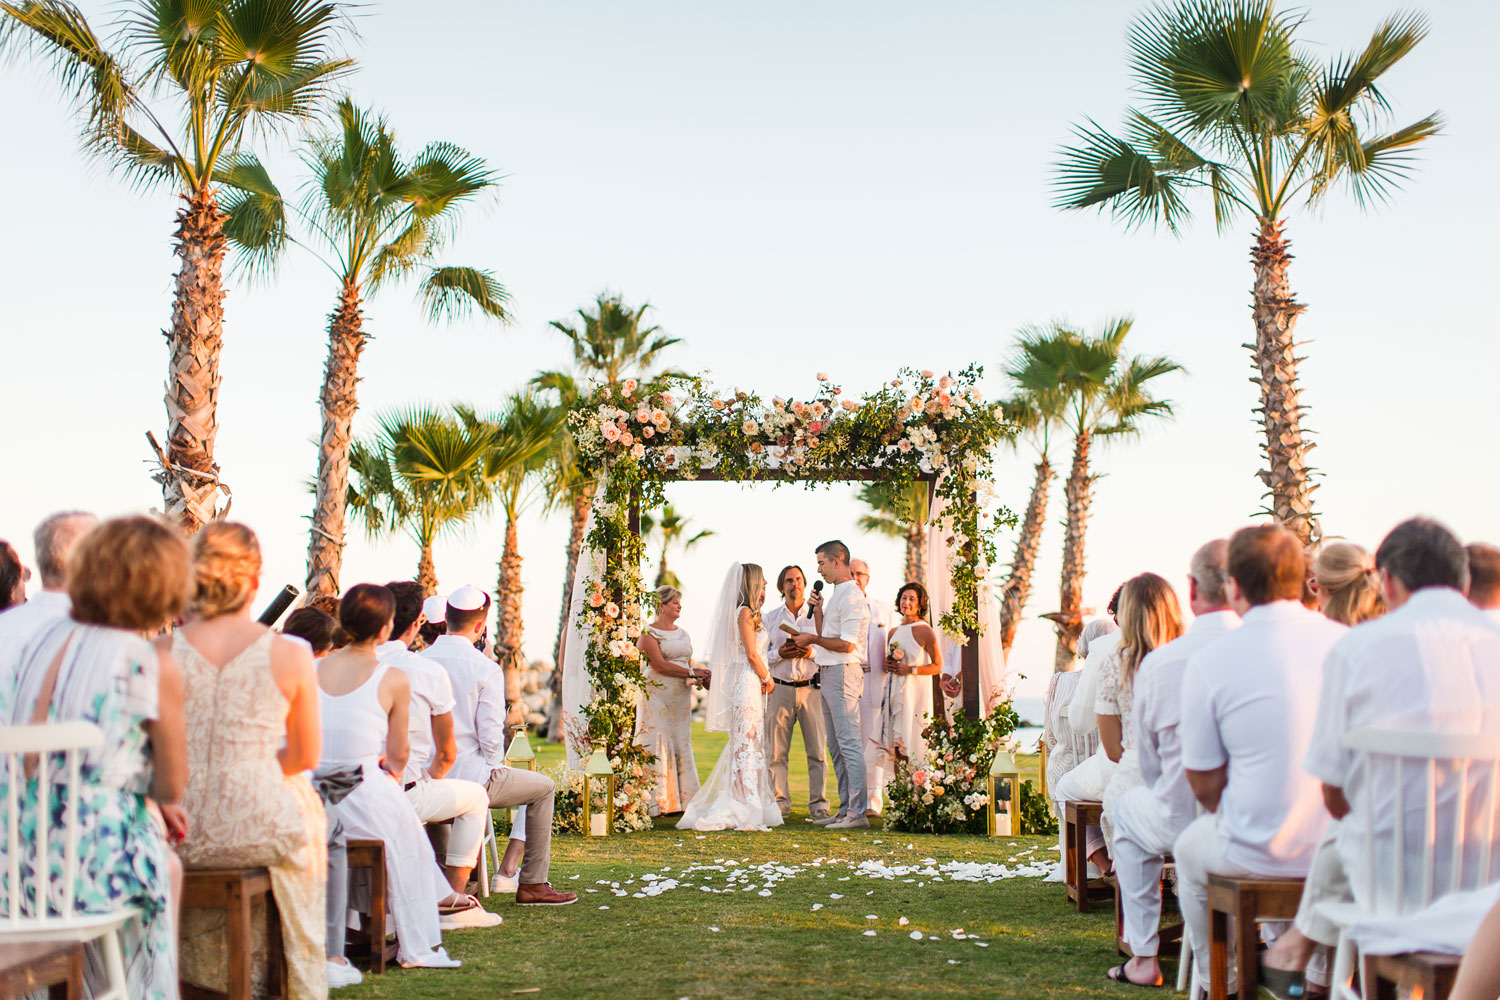 destination wedding with adults-only guest list, how to have an adults-only wedding